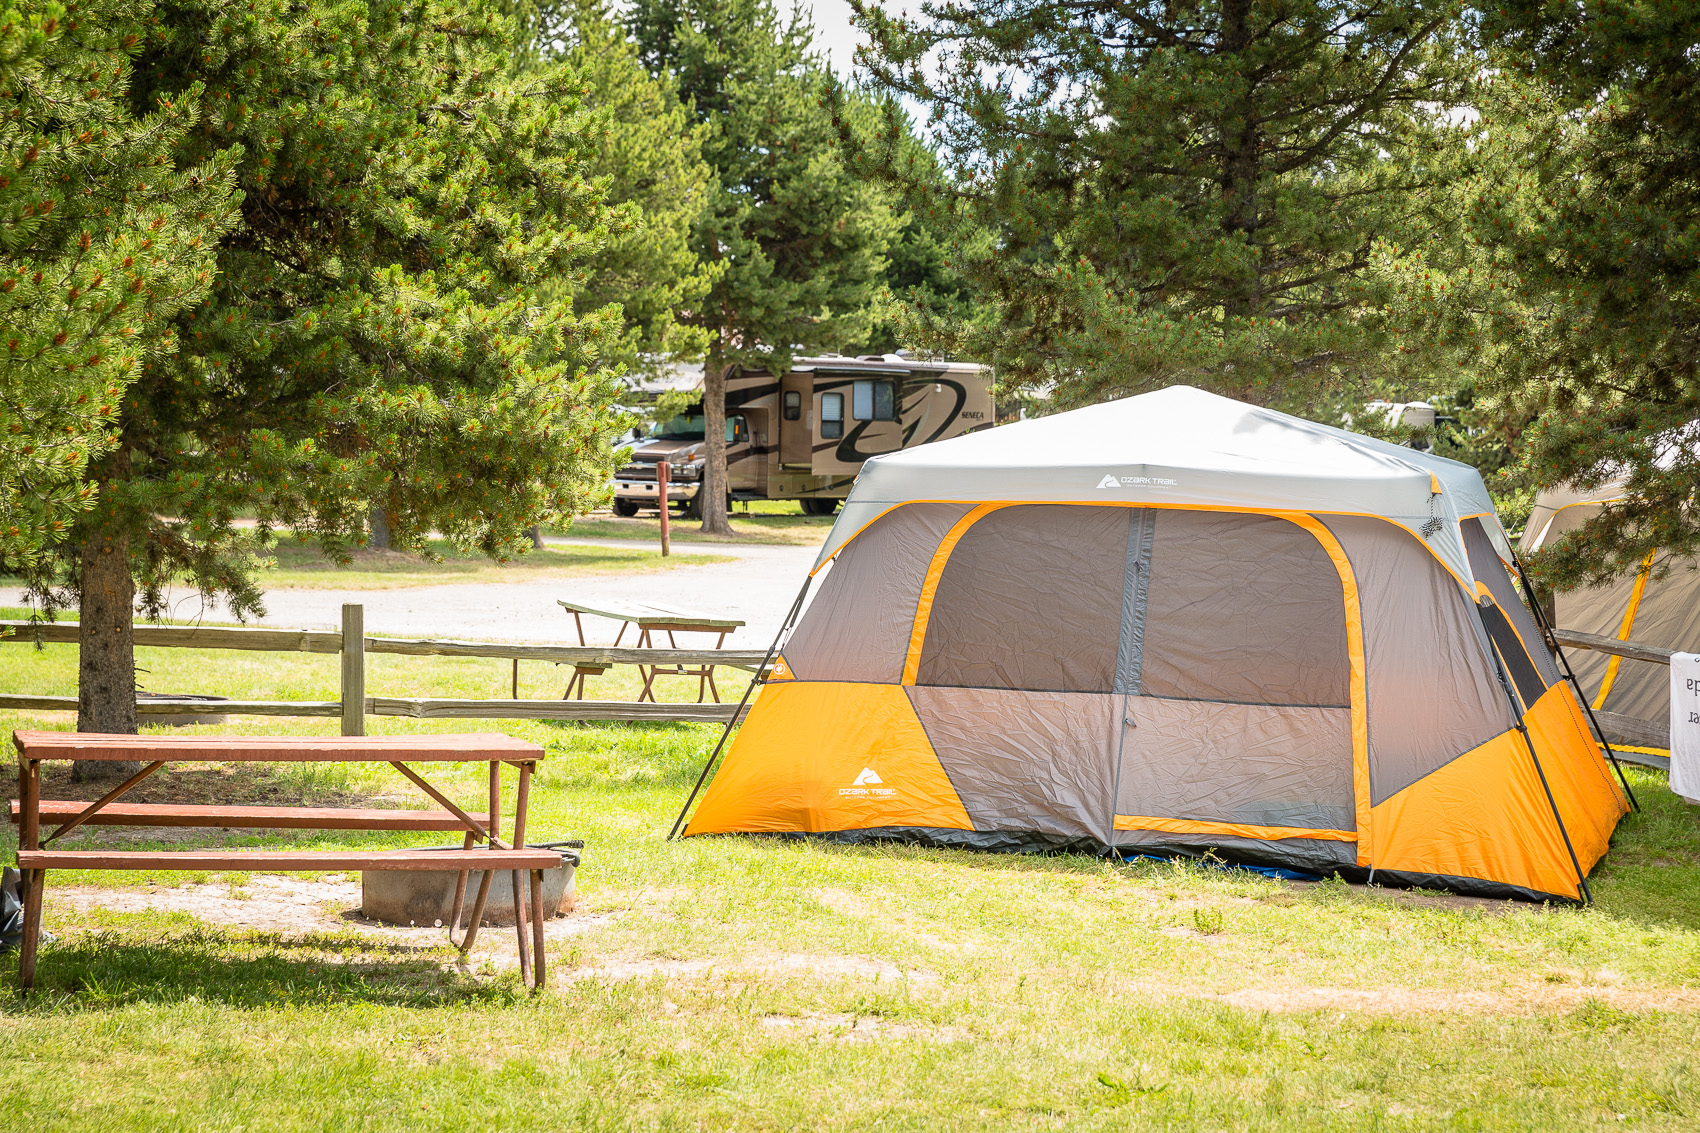 west yellowstone, montana tent camping sites | yellowstone park